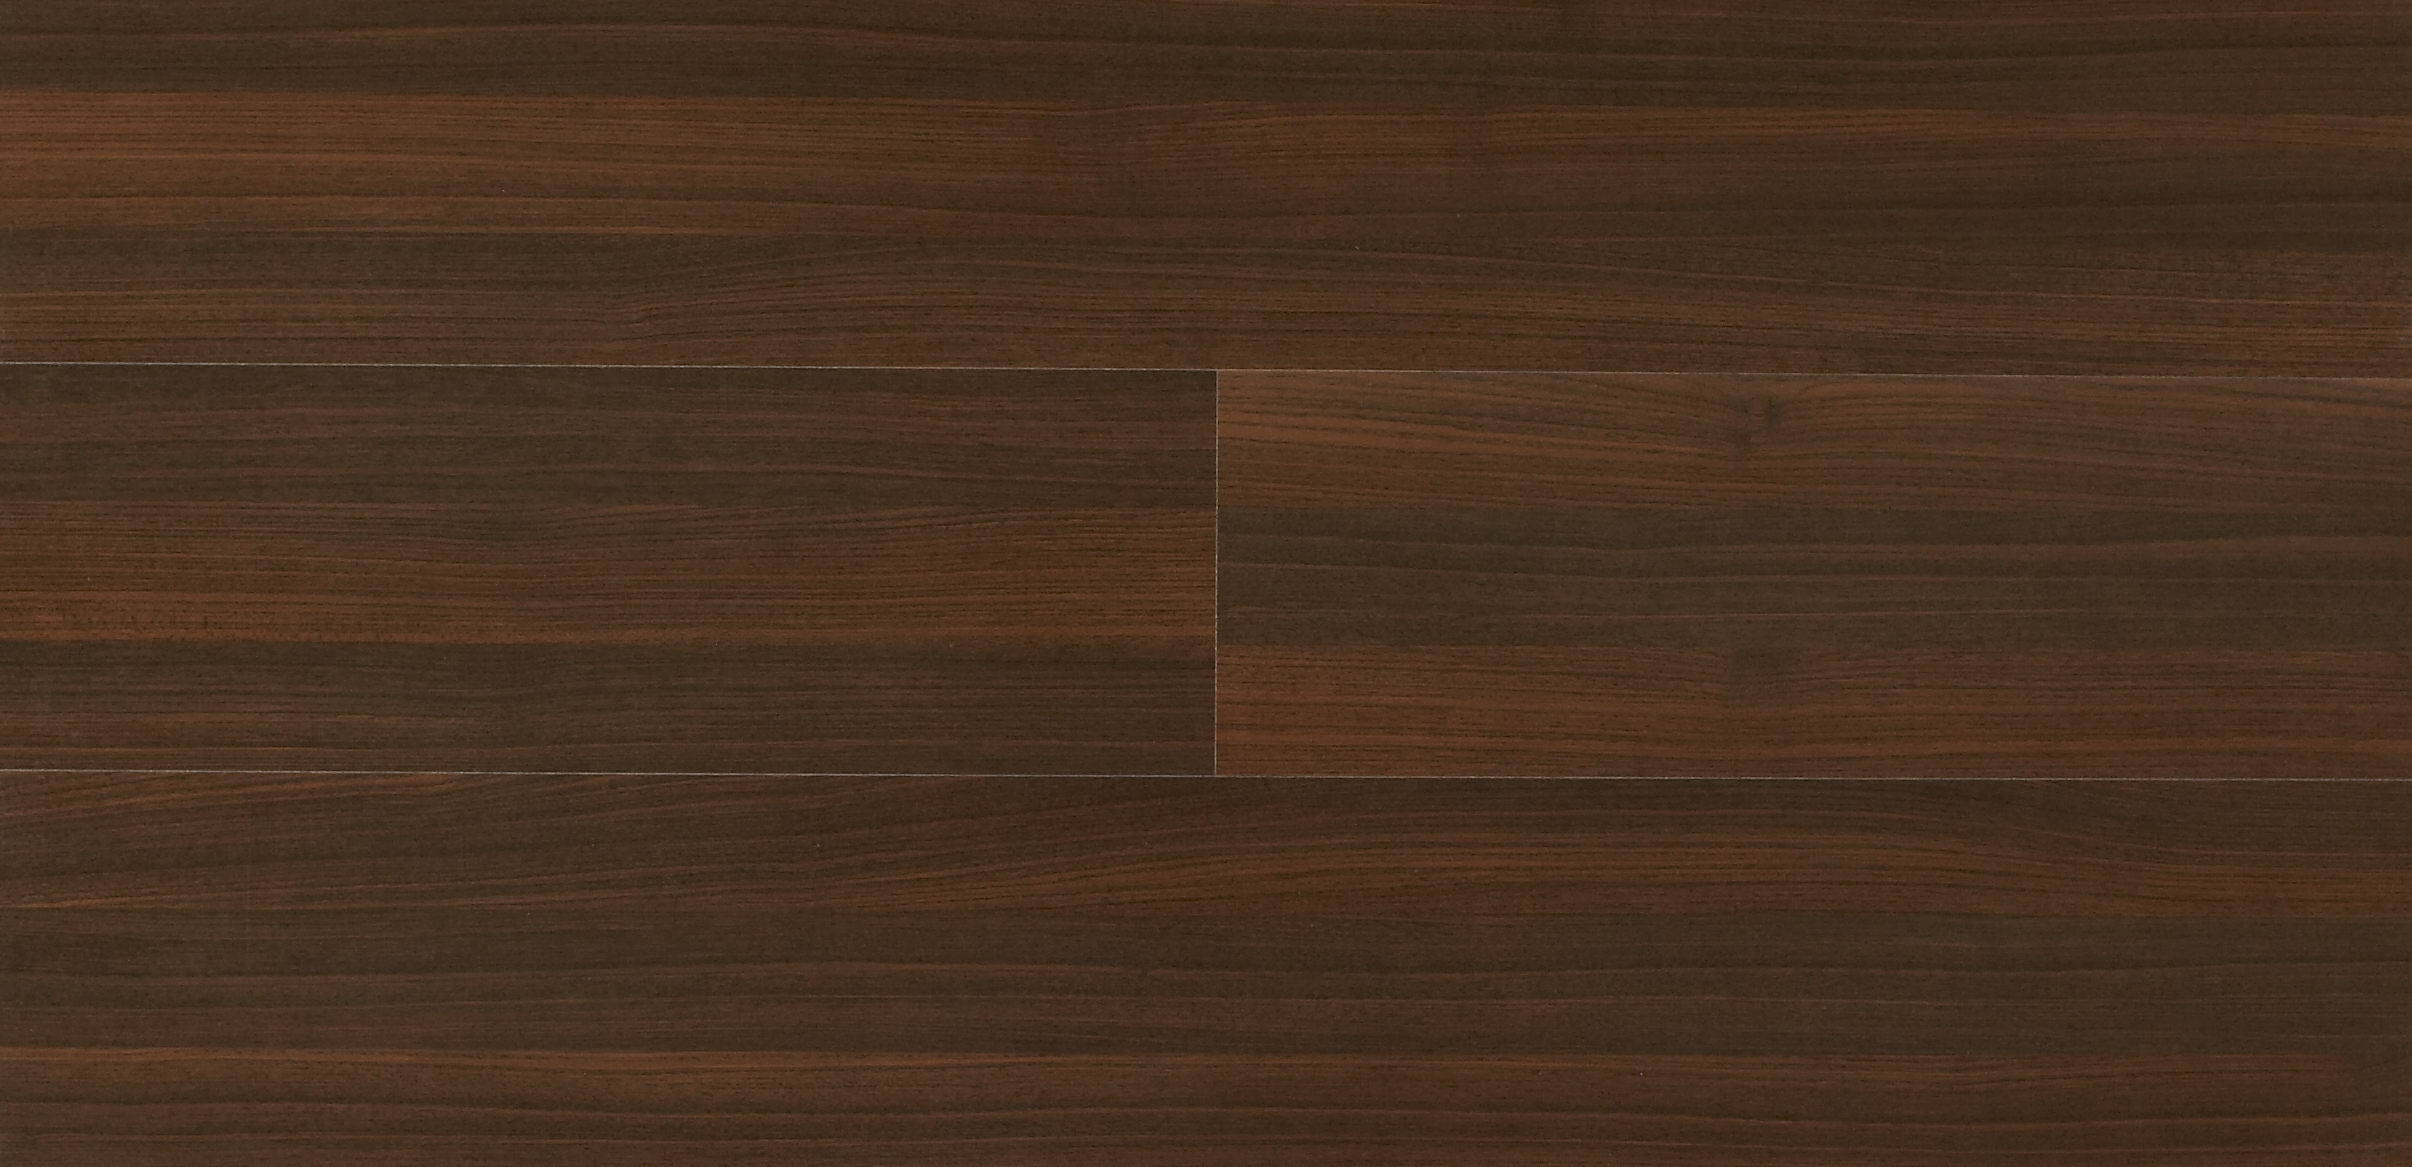 Wood Tile Texture : Wood background texture, wooden tiles free image - Wood background ...